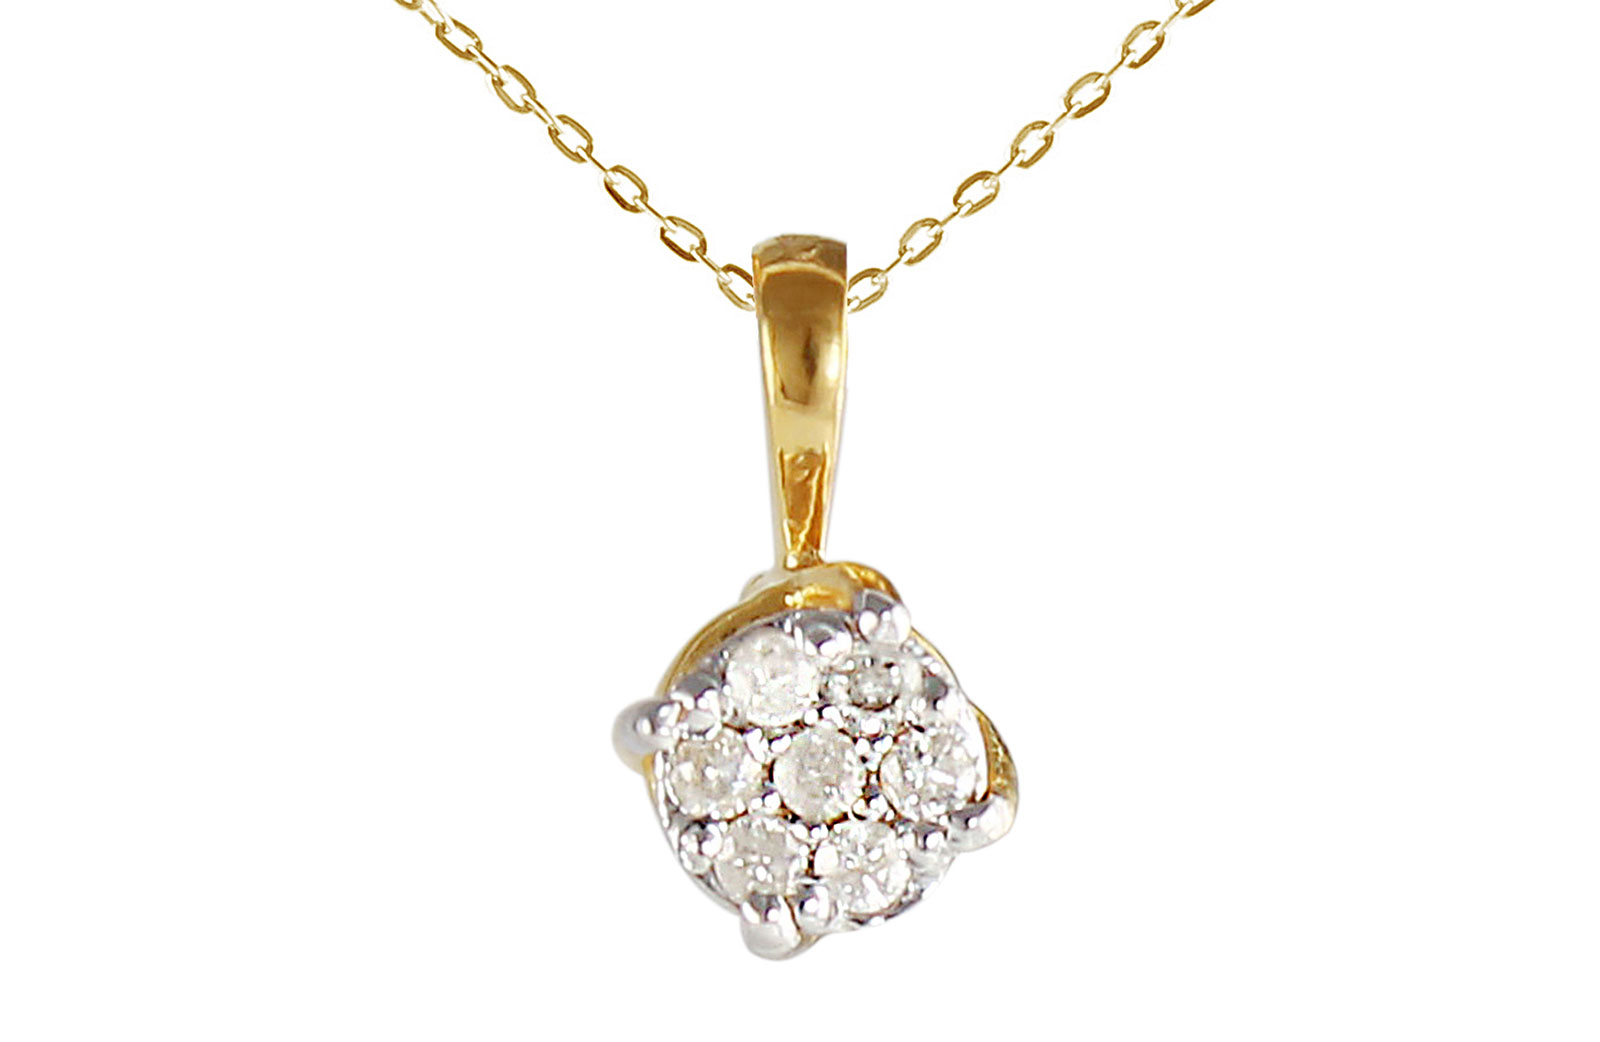 Vera Perla 10k Solid Yellow Gold 0.07CTS Genuine Diamonds Twisted Solitaire Necklace